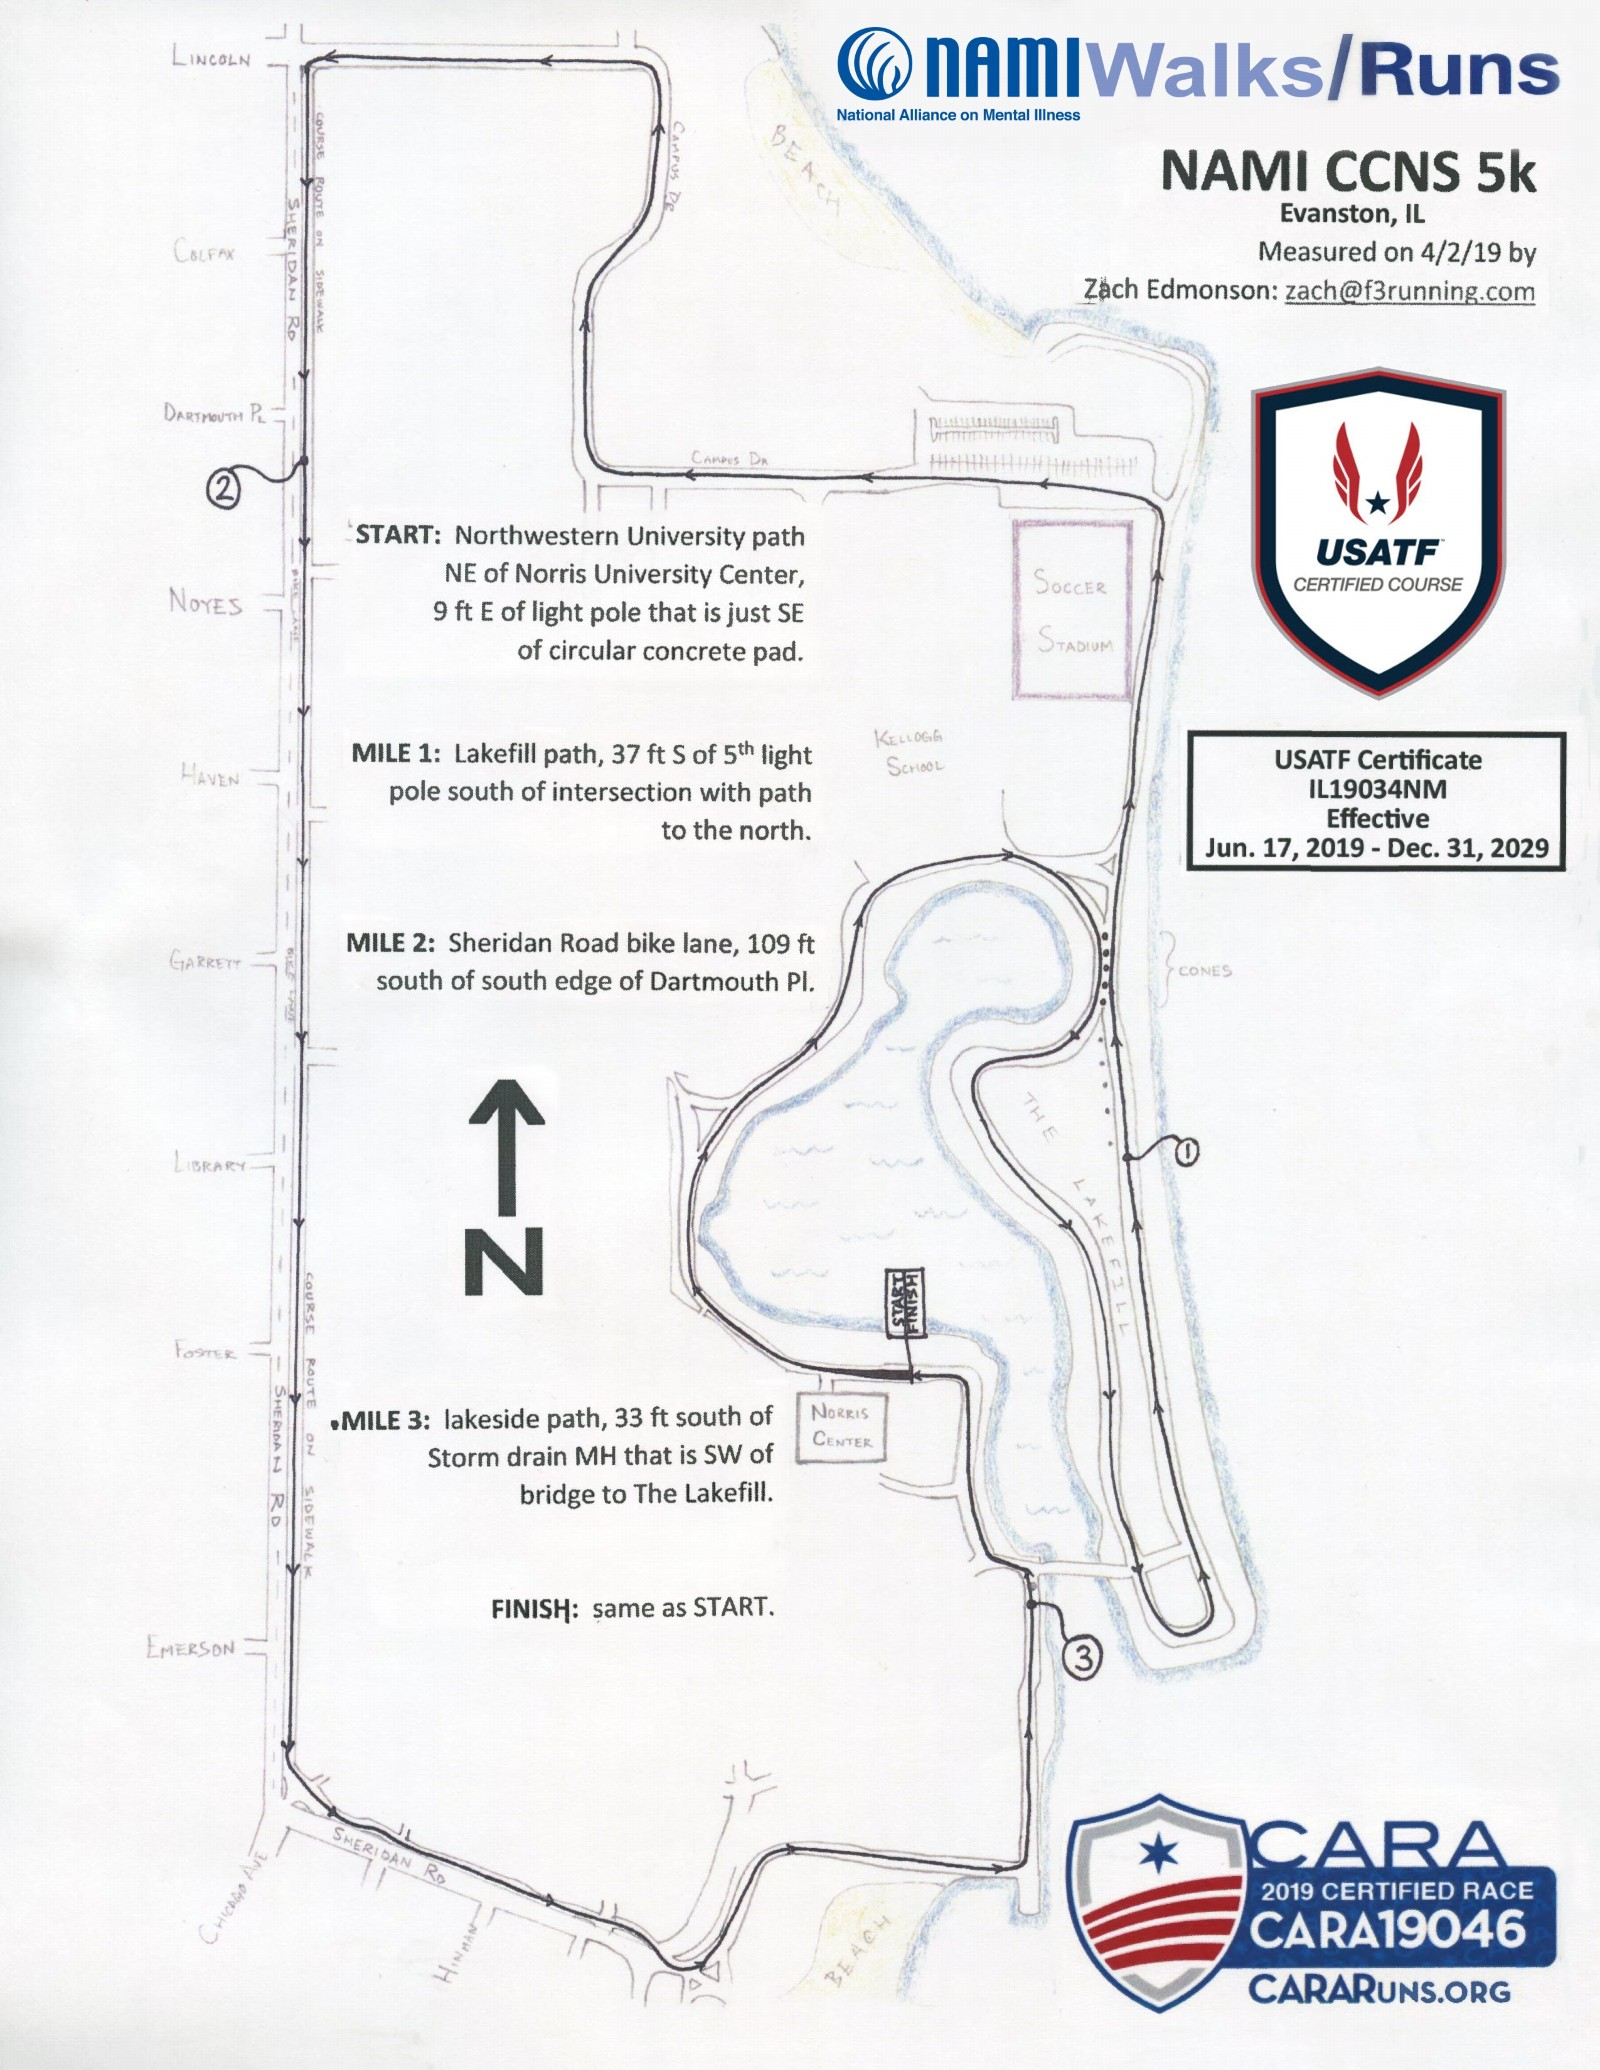 NAMI 5K RUN/WALK MAP CHICAGO